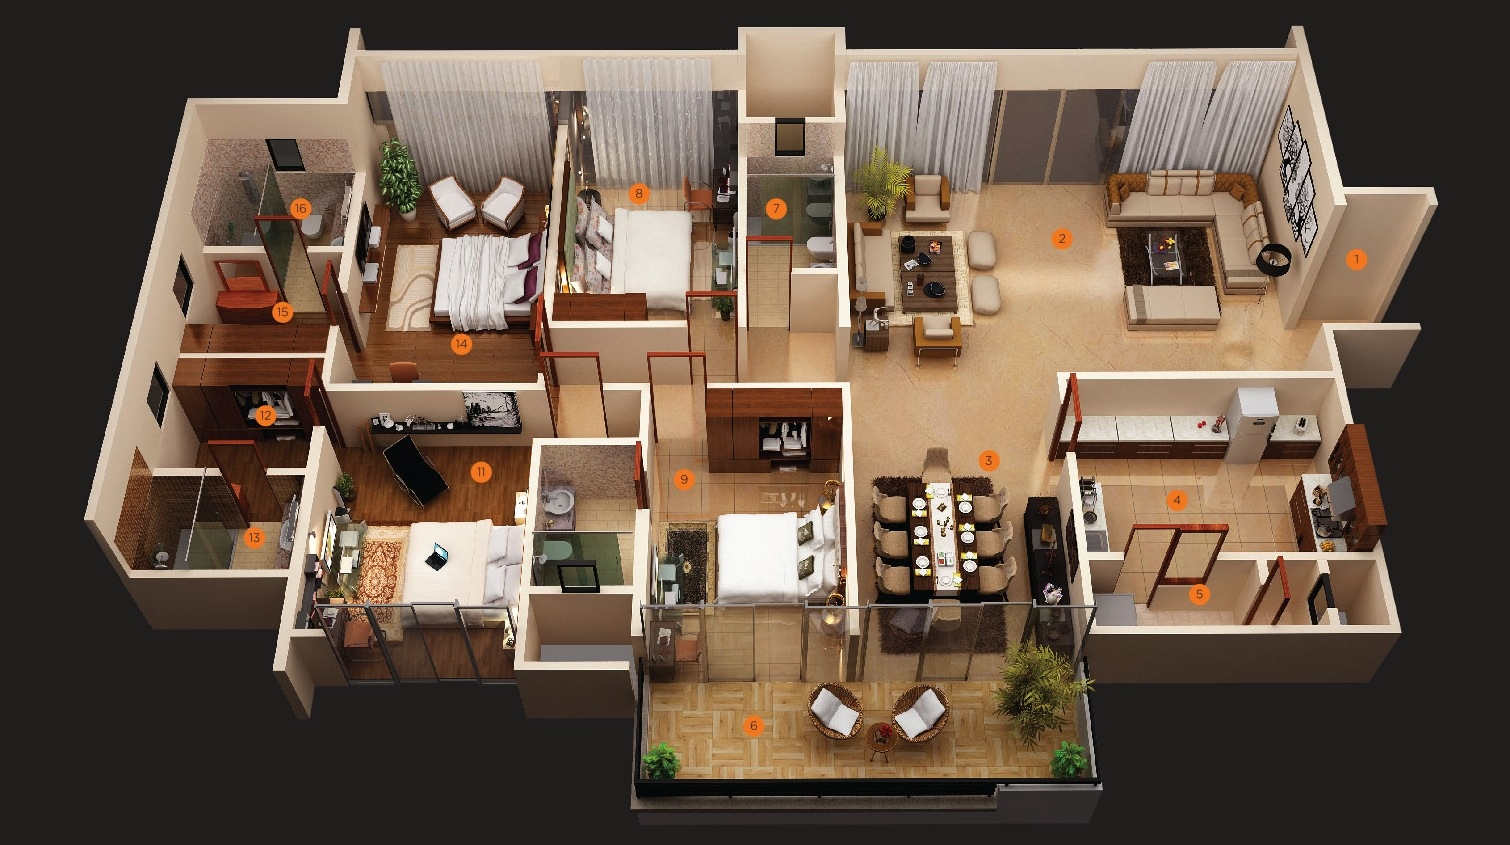 Modern 4 Bedroom House Plans   Decor Units Architecture   Design  Modern 4 Bedroom House Plans